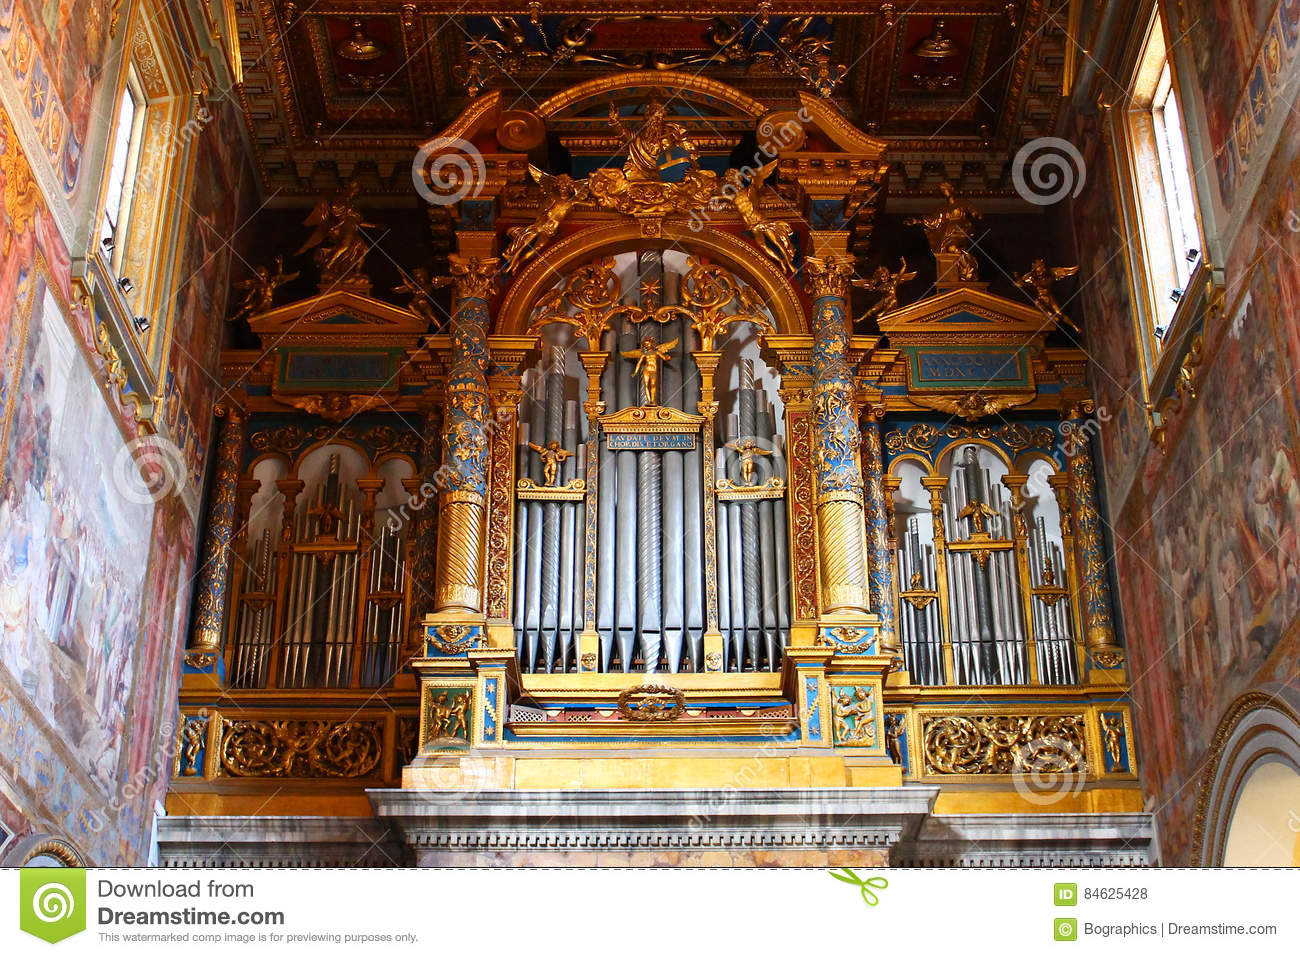 Download Pipe Organ From Large Italian Cathedral, Golden Details Stock Photo - Image of religion, church: 84625428